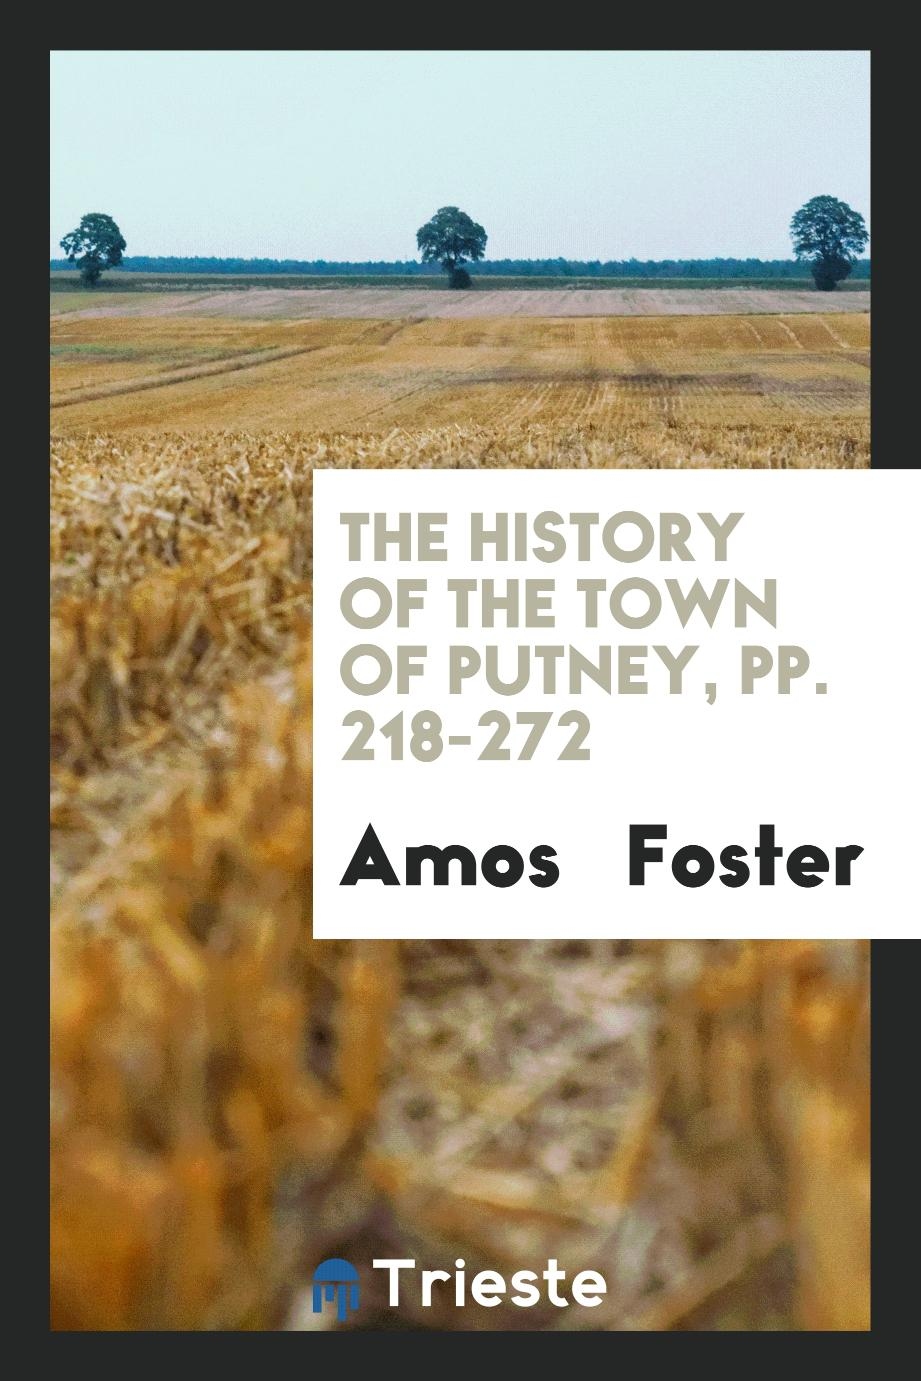 The History of the Town of Putney, pp. 218-272